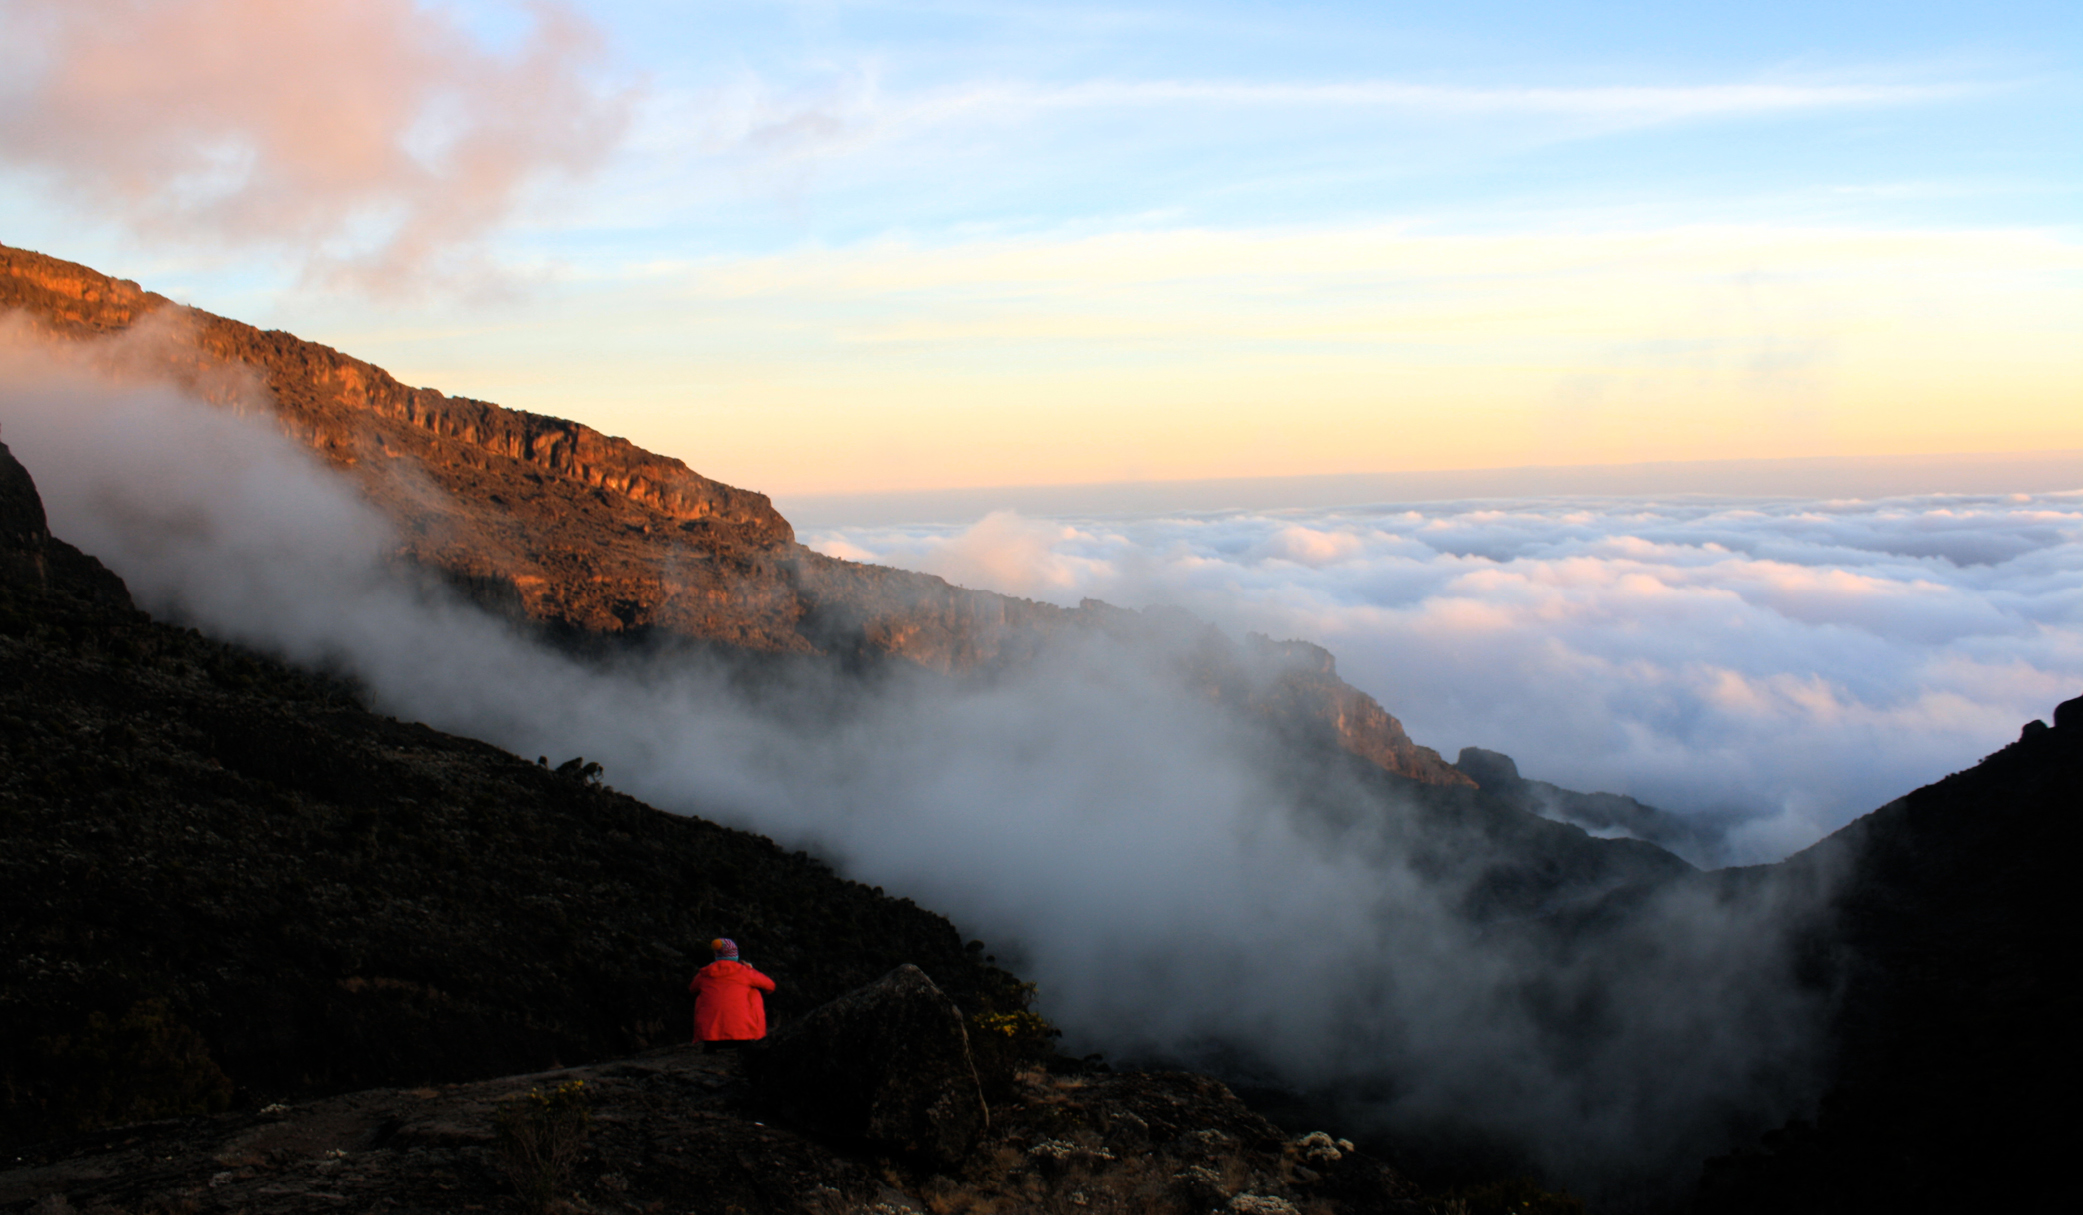 Me enjoying the sunset from above the clouds at barranco camp on Mt. Kilimanjaro.